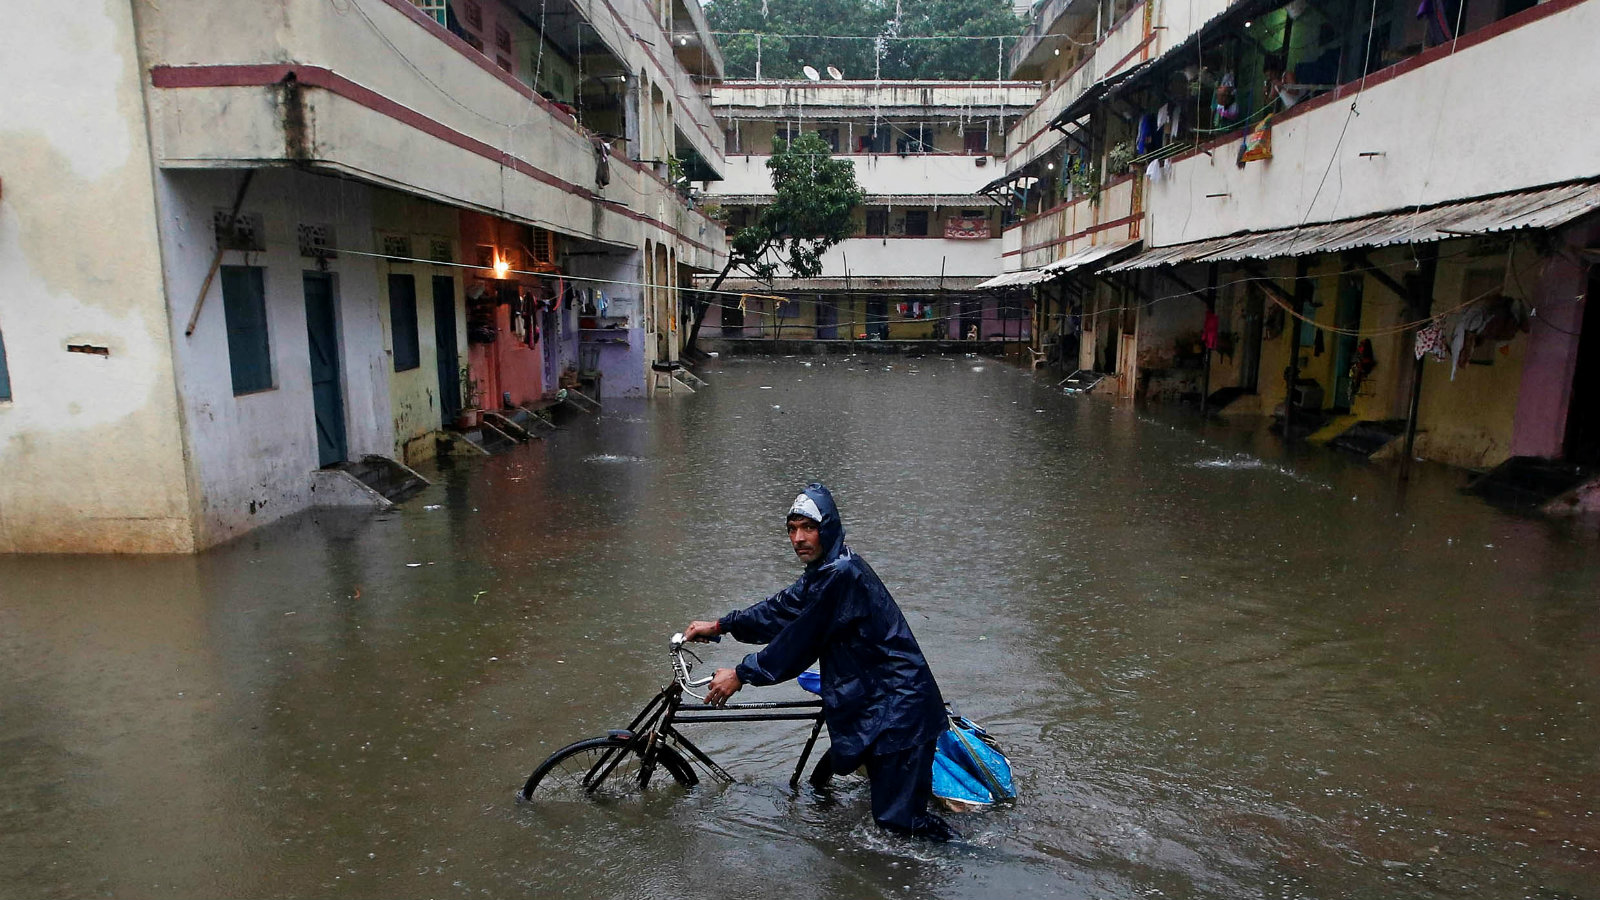 A delivery boy pushes his bicycle through a water-logged street after heavy rains at a residential colony in Mumbai, India September 20, 2017